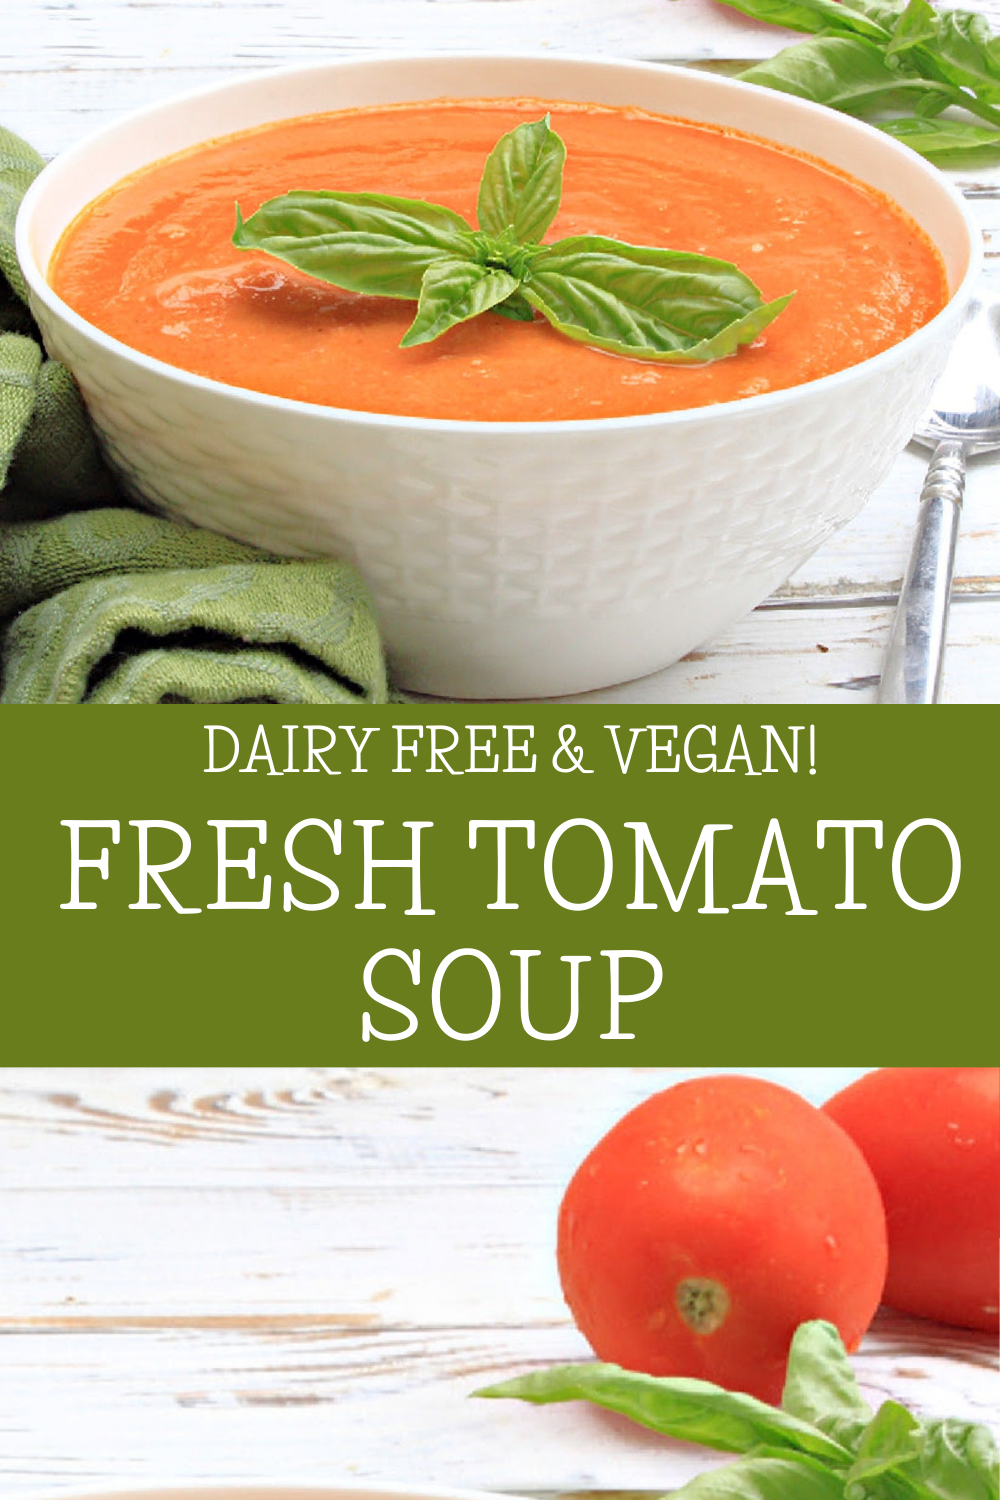 Fresh Tomato Soup ~ The flavors of garden-fresh tomatoes shine in this healthy, plant-based, comfort food classic! via @thiswifecooks